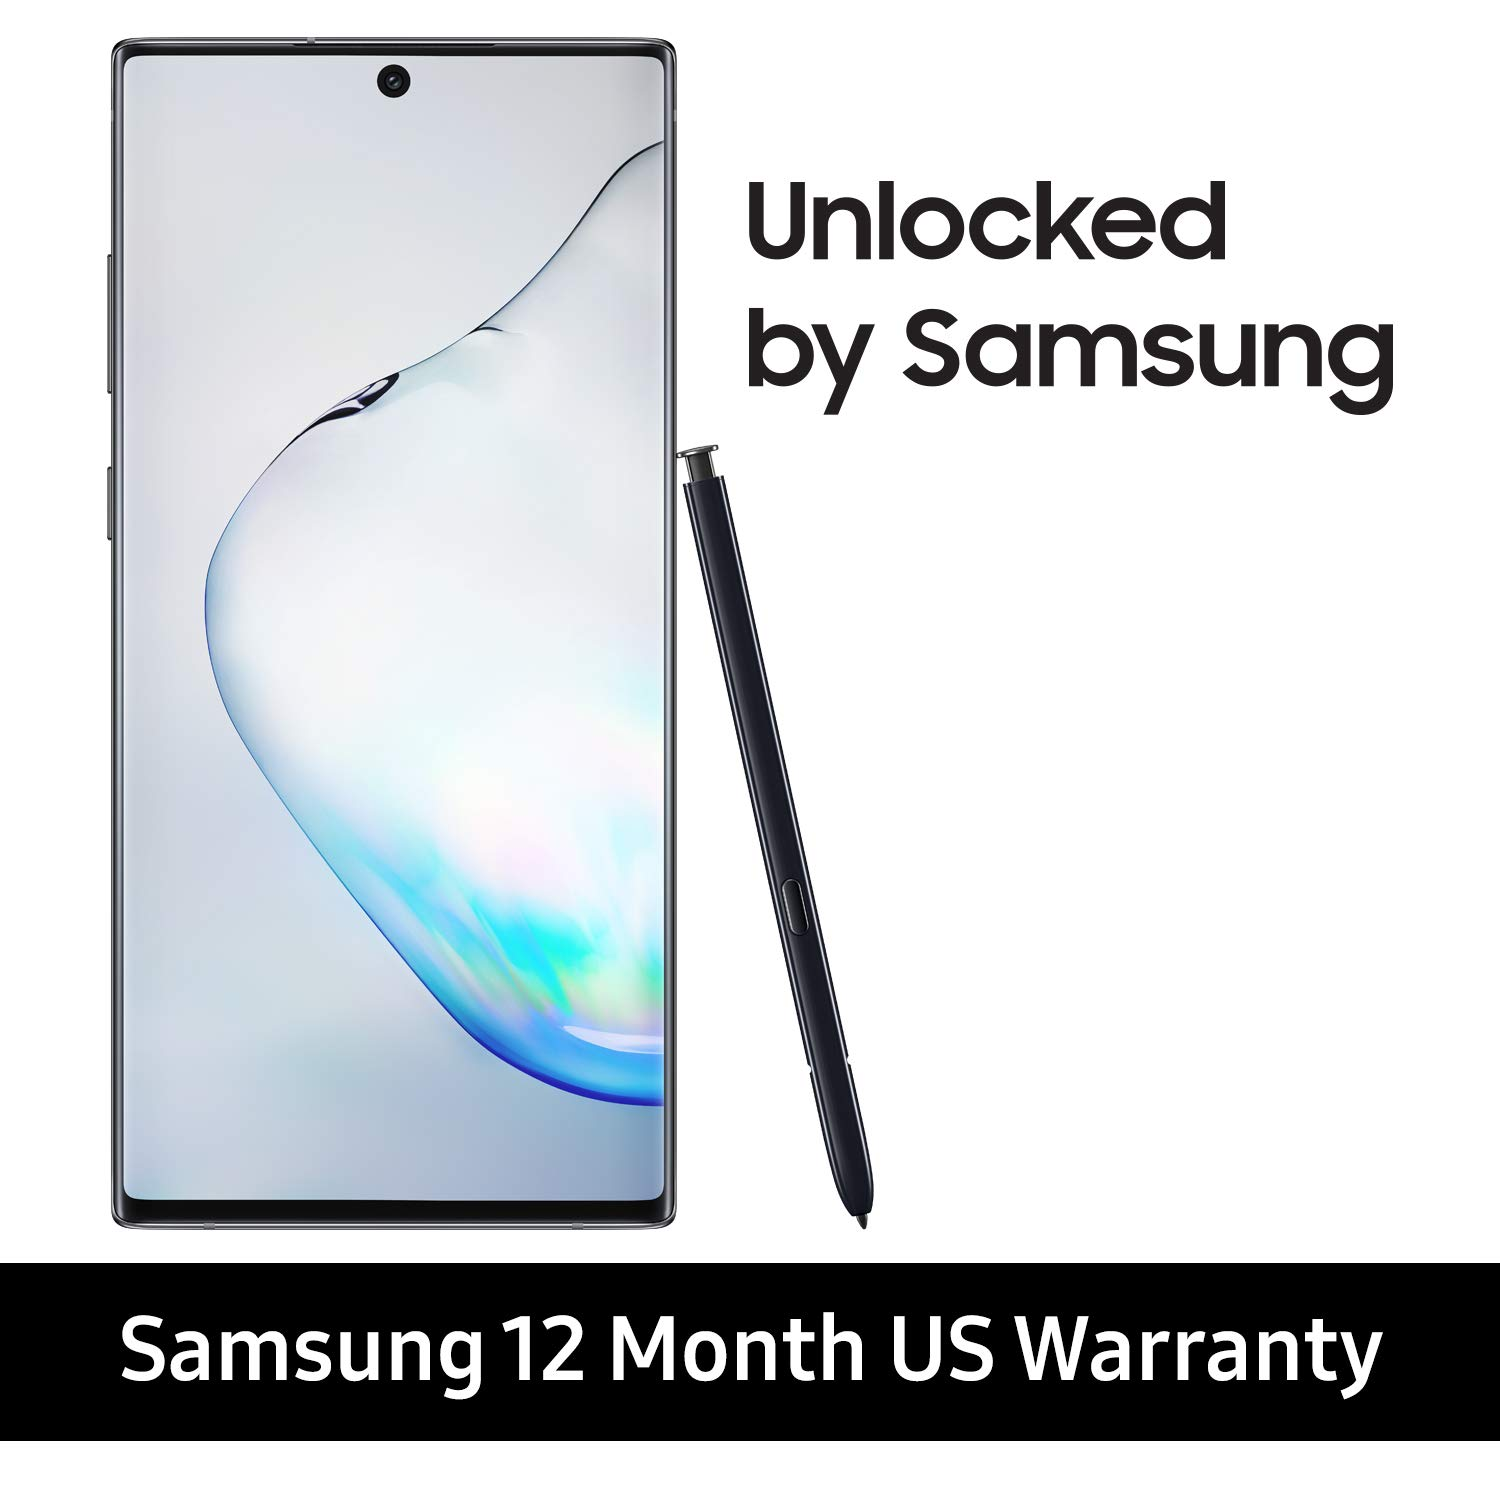 Samsung Galaxy Note 10+ Plus Factory Unlocked Cell Phone with 256GB (U.S. Warranty), Aura Black/ Note10+ by Samsung